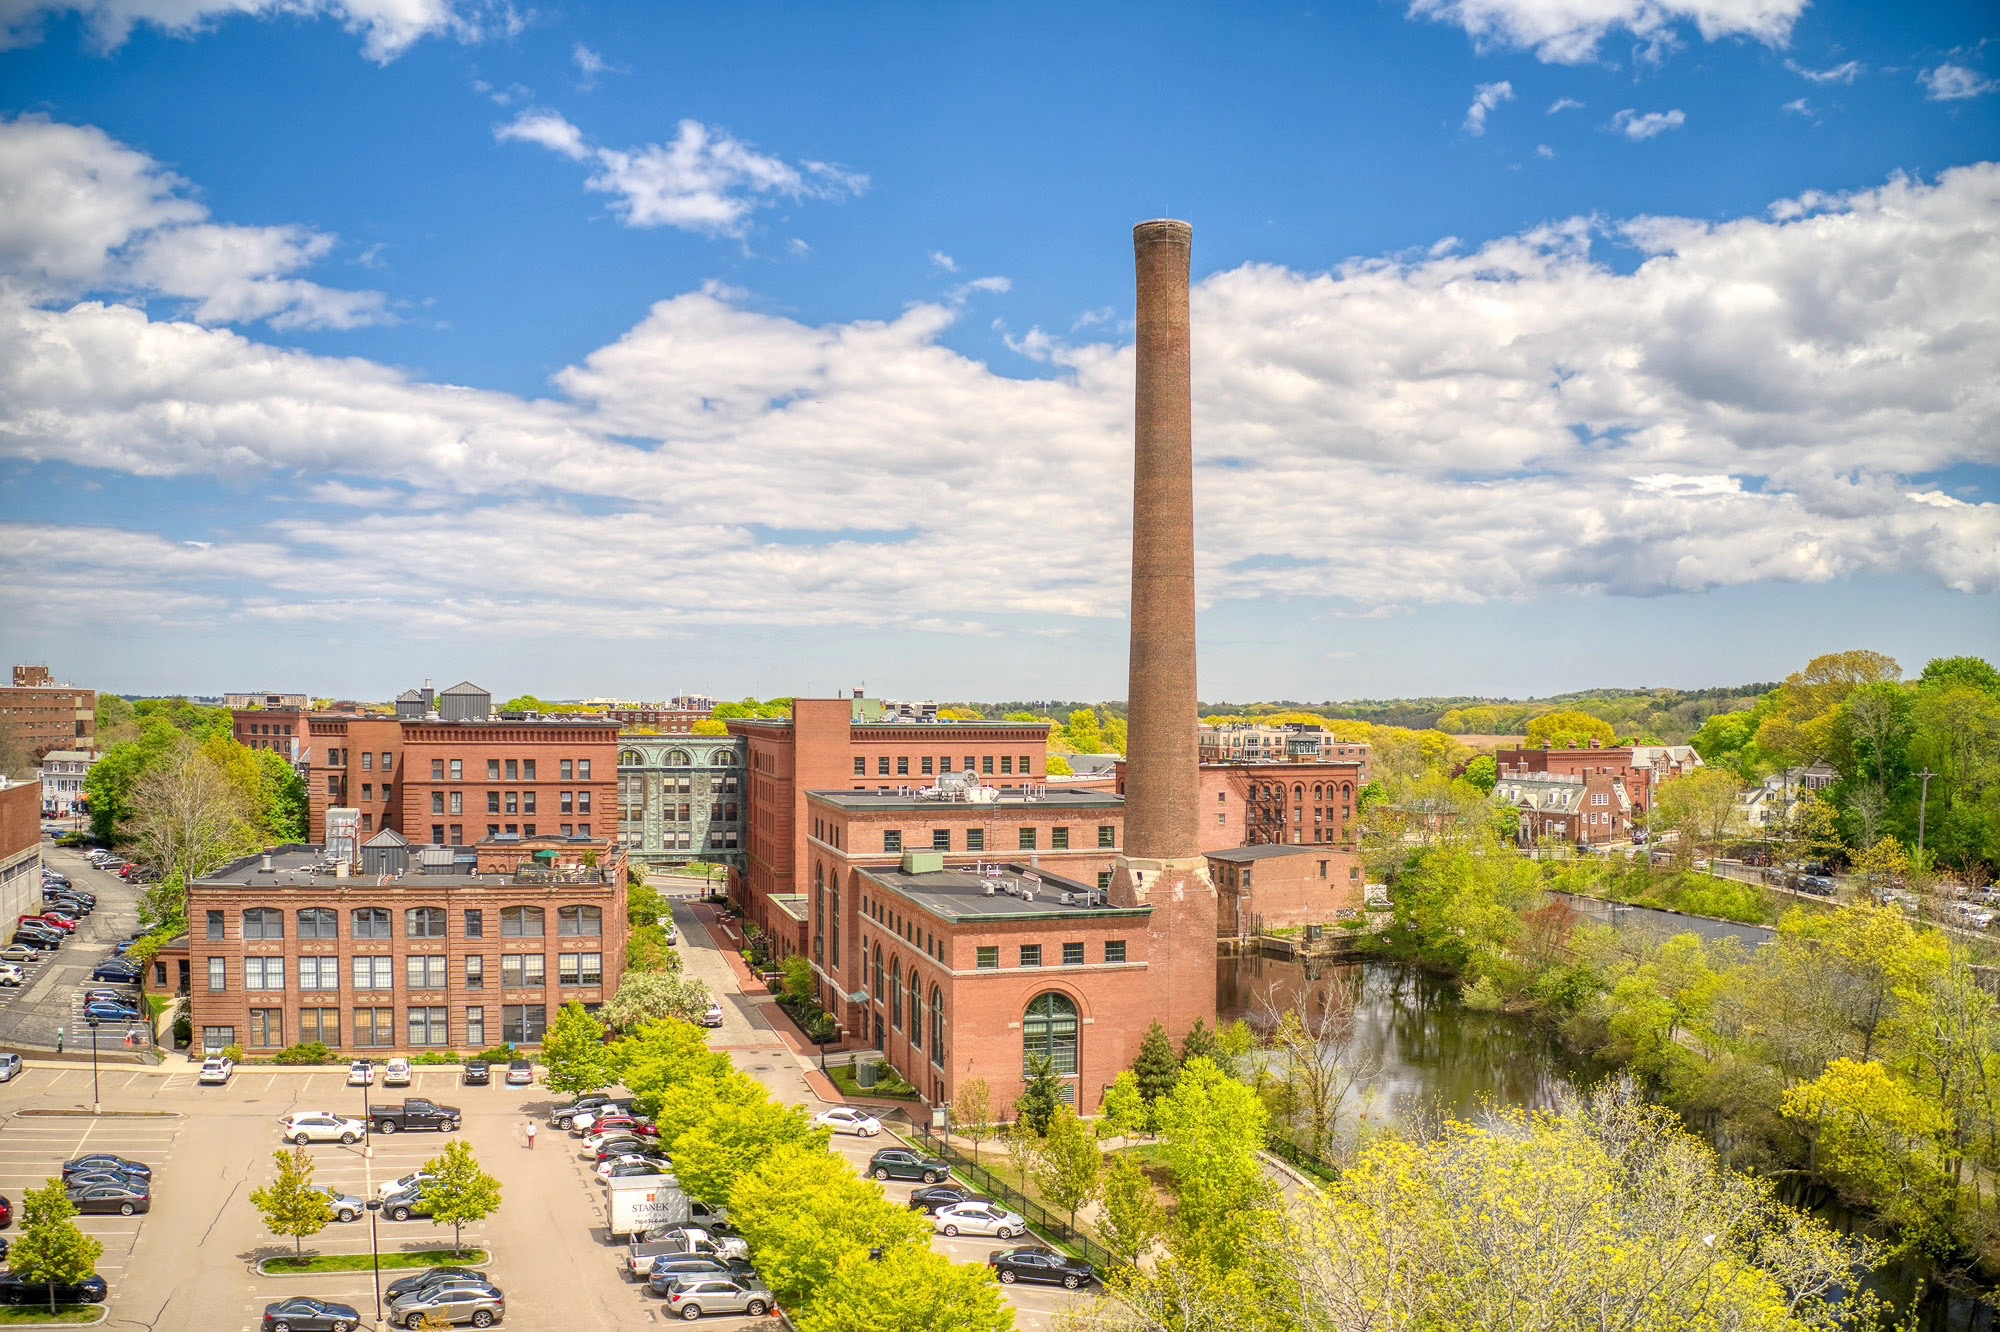 Just listed: A loft-style condo in a historic Dorchester mill for $875,000